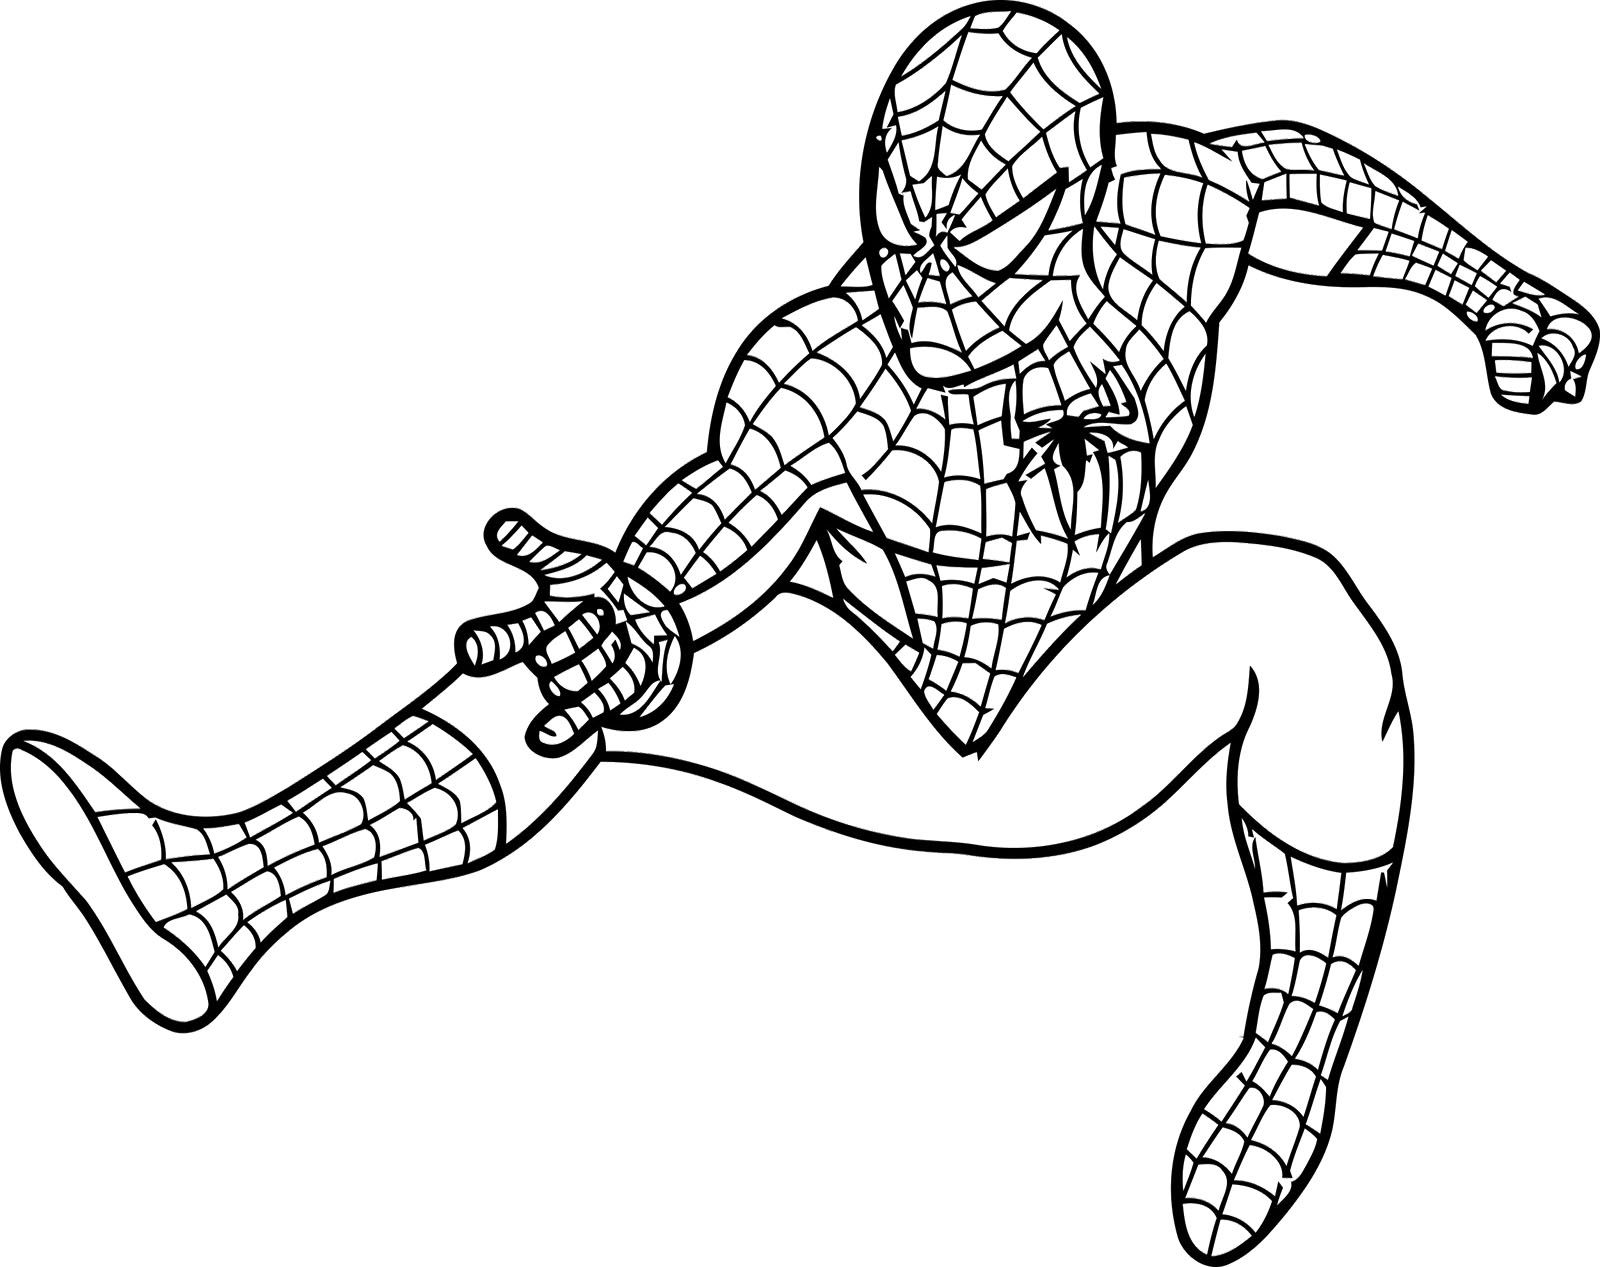 Ironman And Spiderman Coloring Pages Free Printout Texas Life